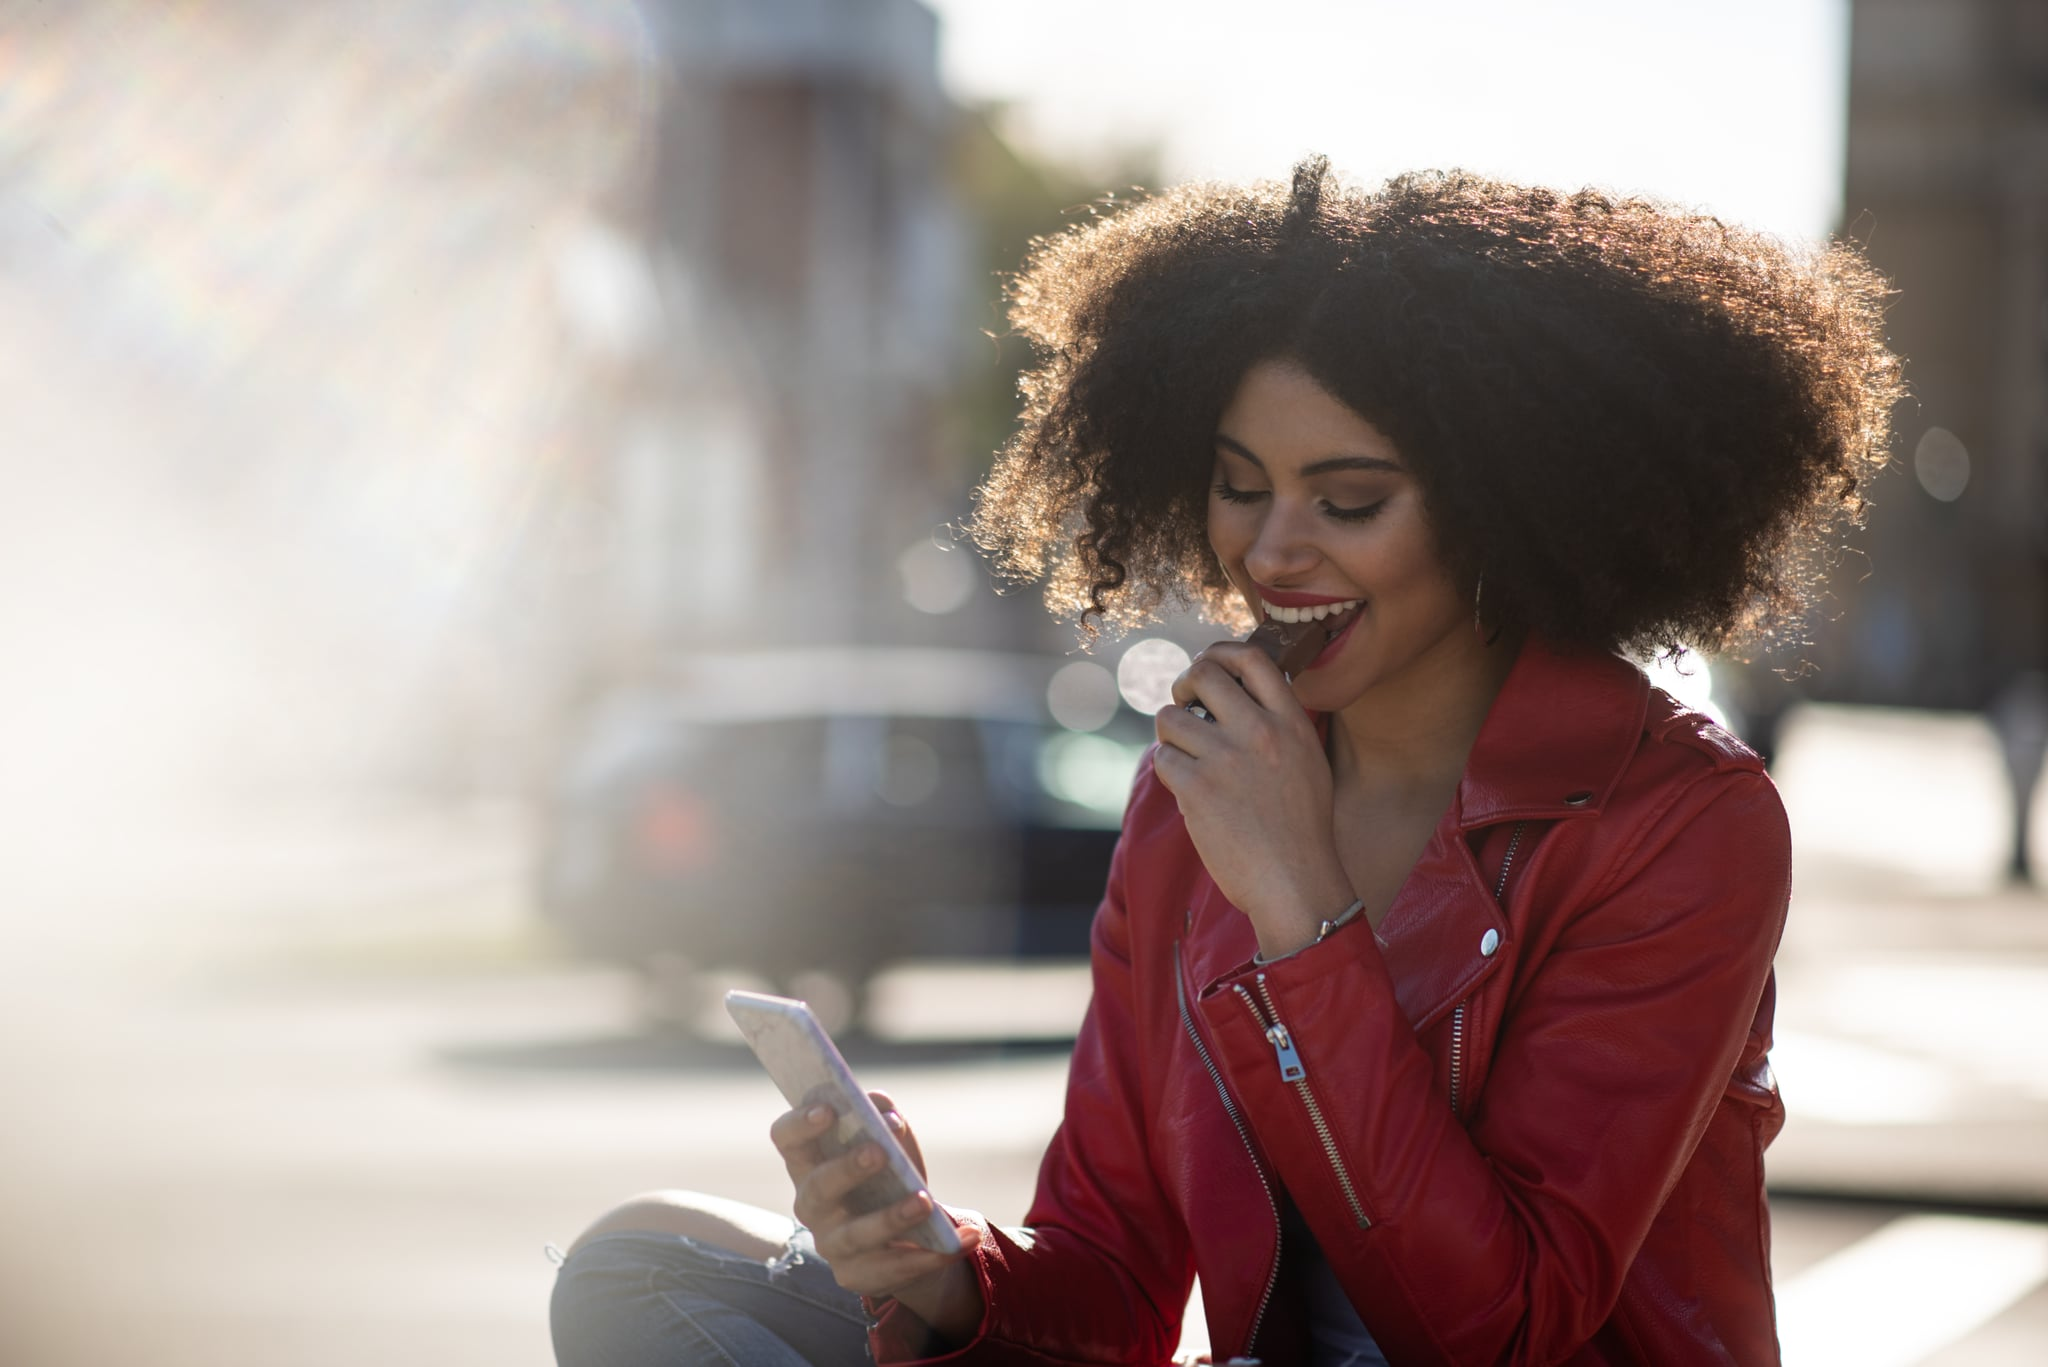 Smiling teen black curly hair girl looking to phone and eating chocolate snack in sunny street